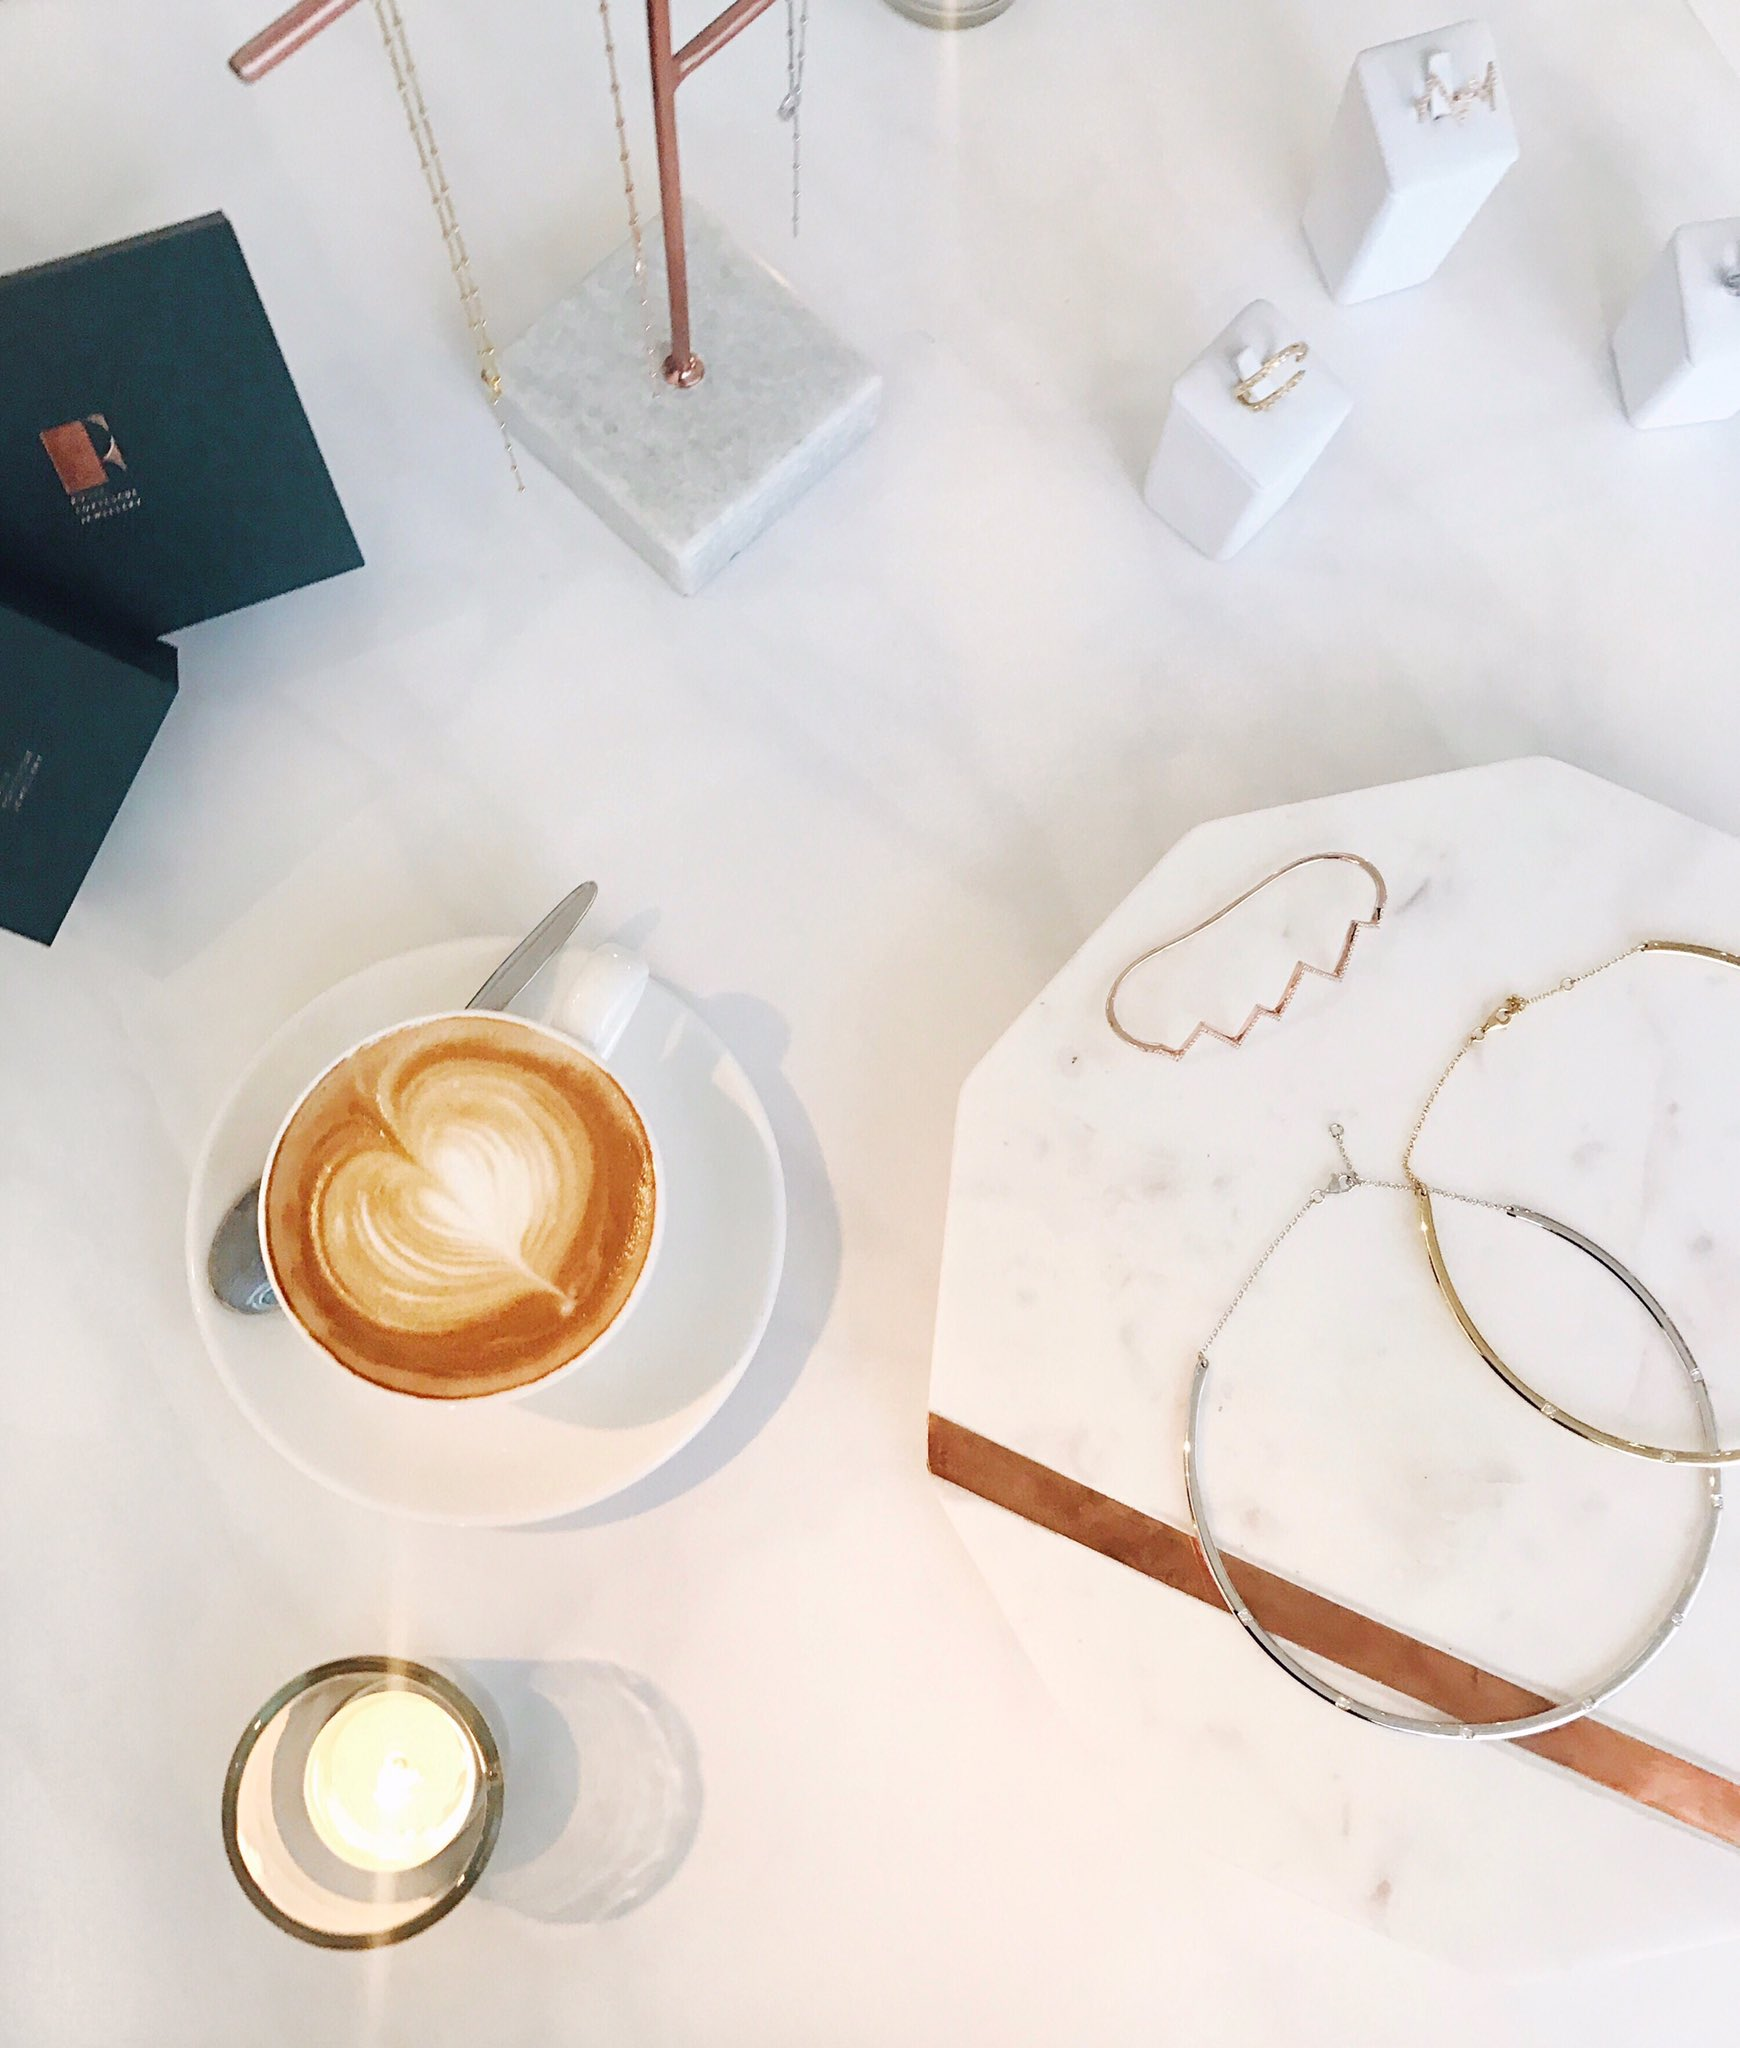 RT @Jessie_Vee: Coffee and cuffs, Chelsea style 💫 Congrats on your ✨third✨collection, @rosiefortescue! https://t.co/kWsSFx69bU